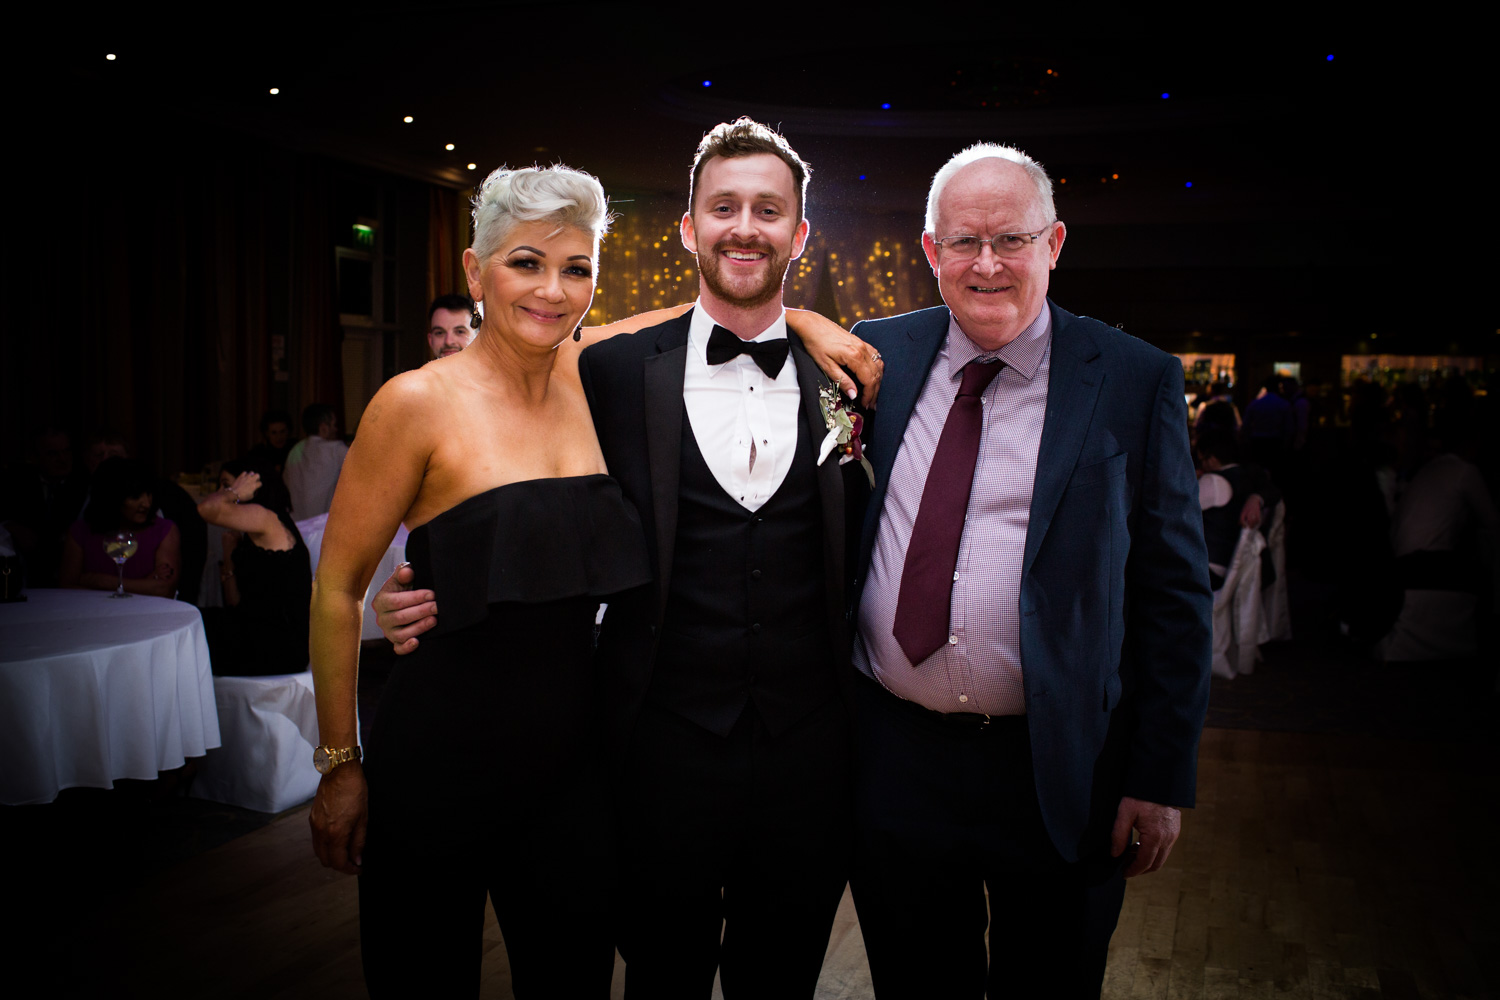 Mark_Barnes_Northern_Ireland_wedding_photographer_Innishowen_Gateway_Donegal_Wedding_photography_Donegal_wedding_photographer-65.jpg